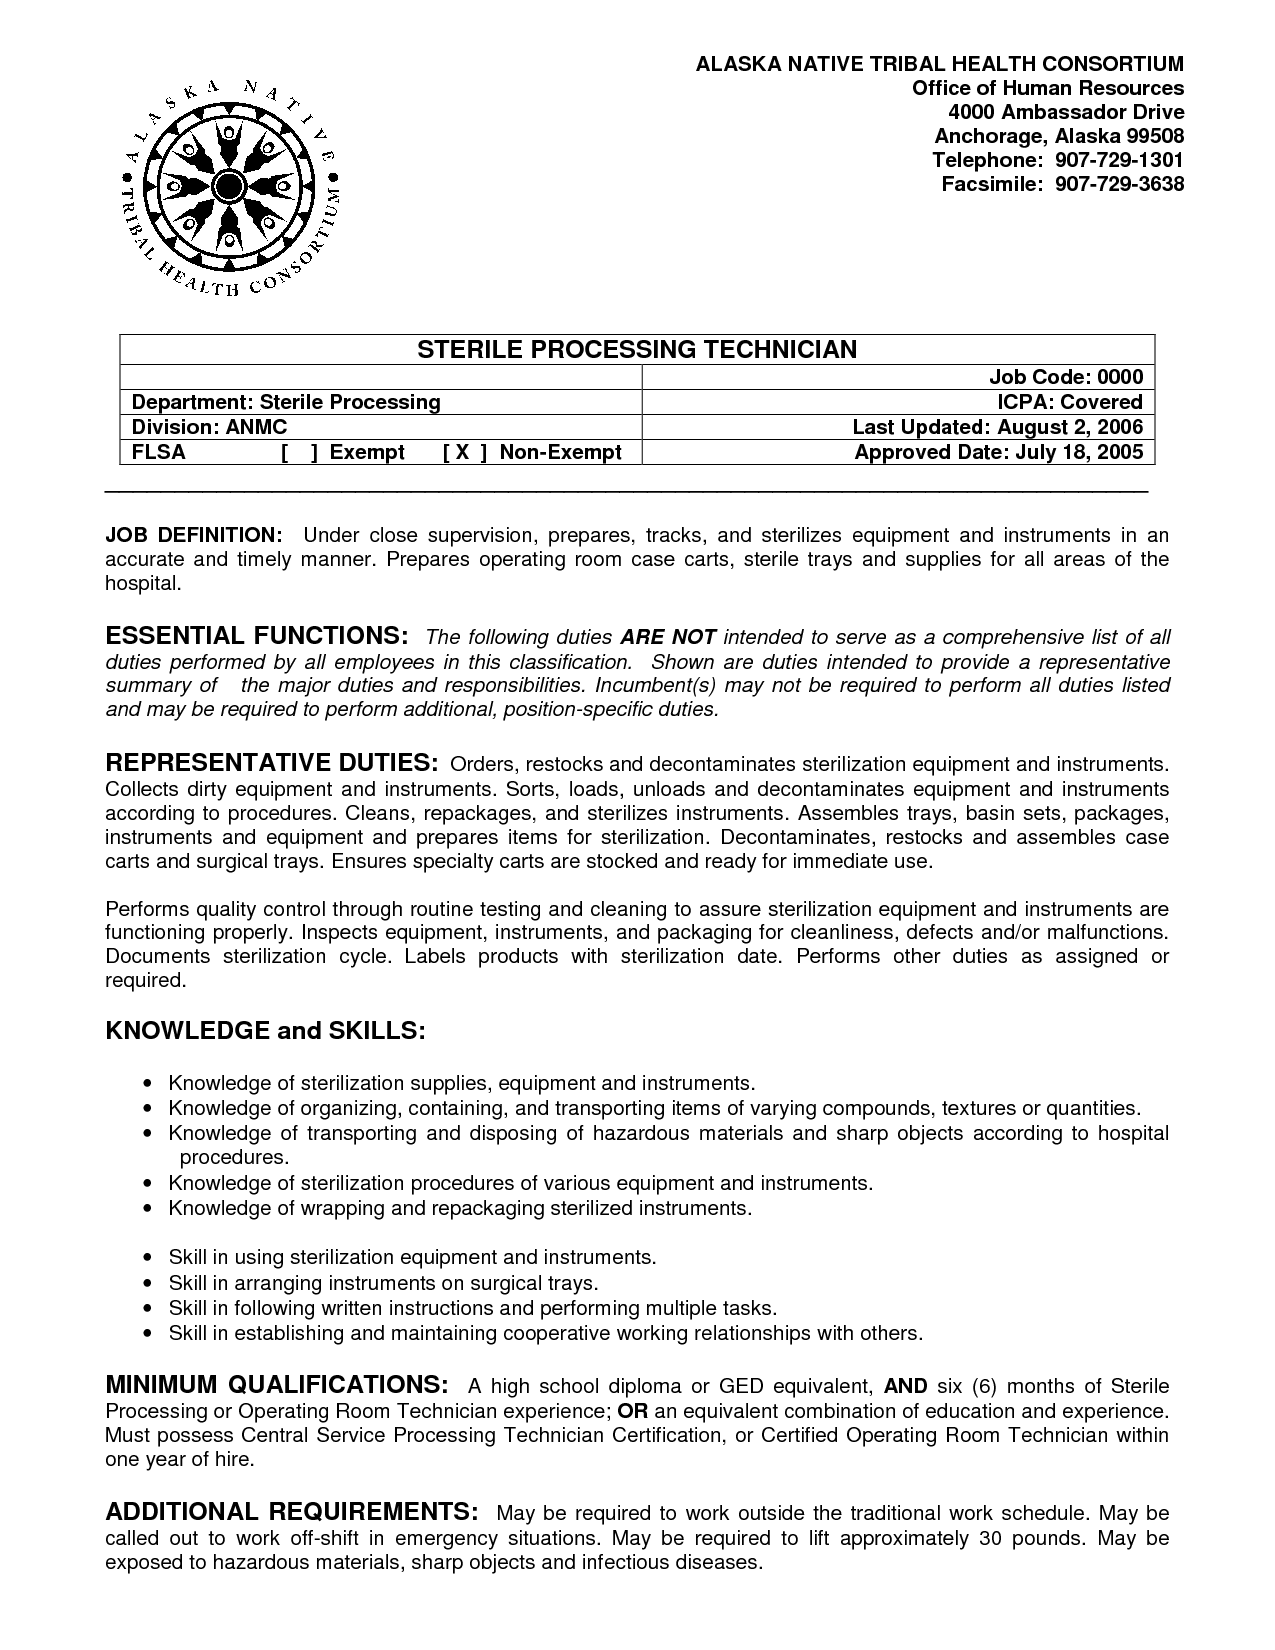 Traditional Resume Templates Avionics Mechanic Cover Letter Jianbochen Manager Sample Resume